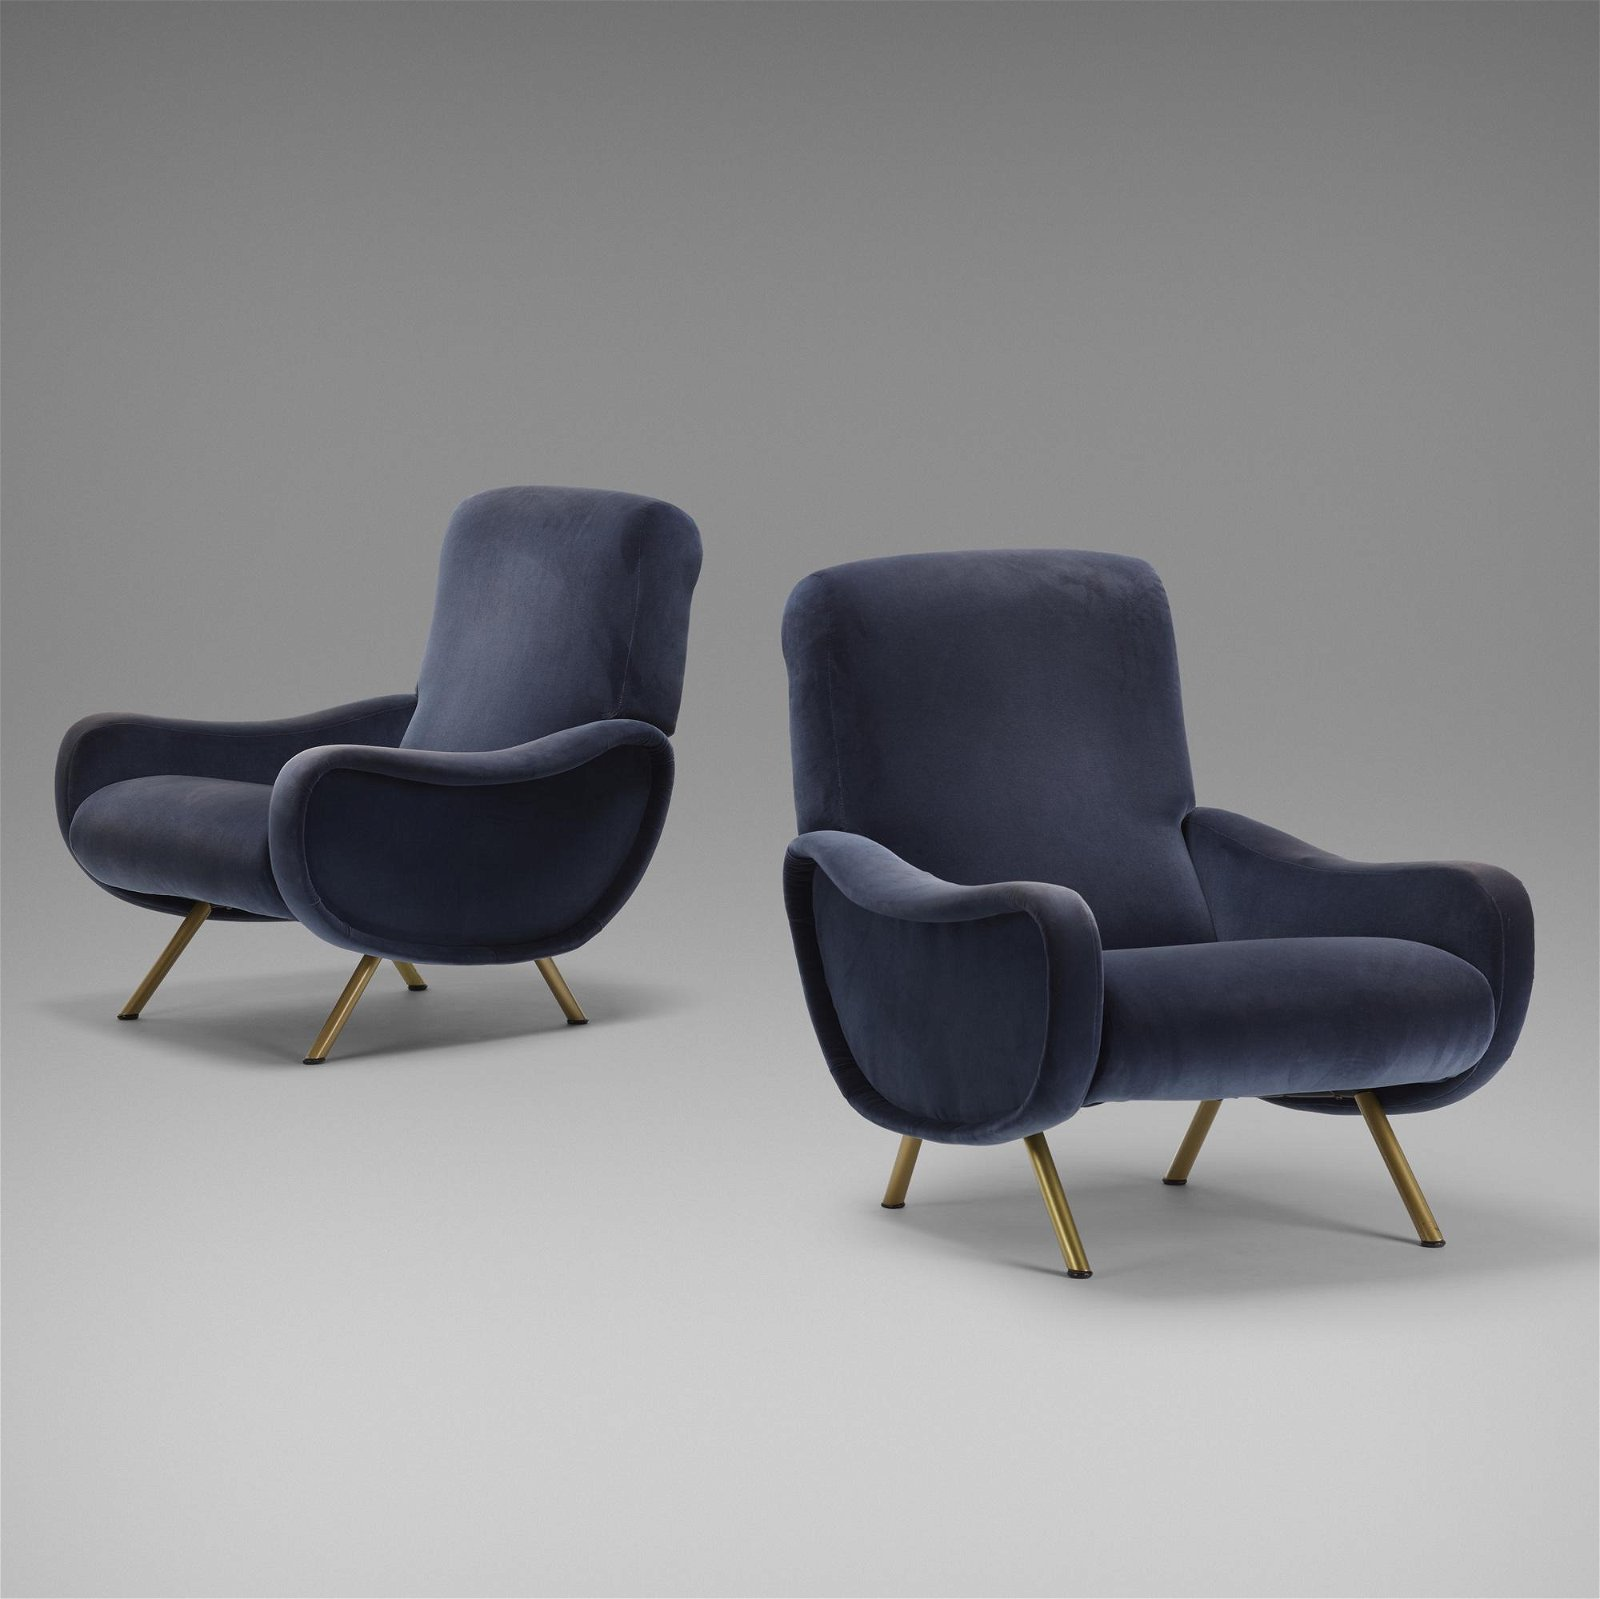 Marco Zanuso, Lady lounge chairs, pair